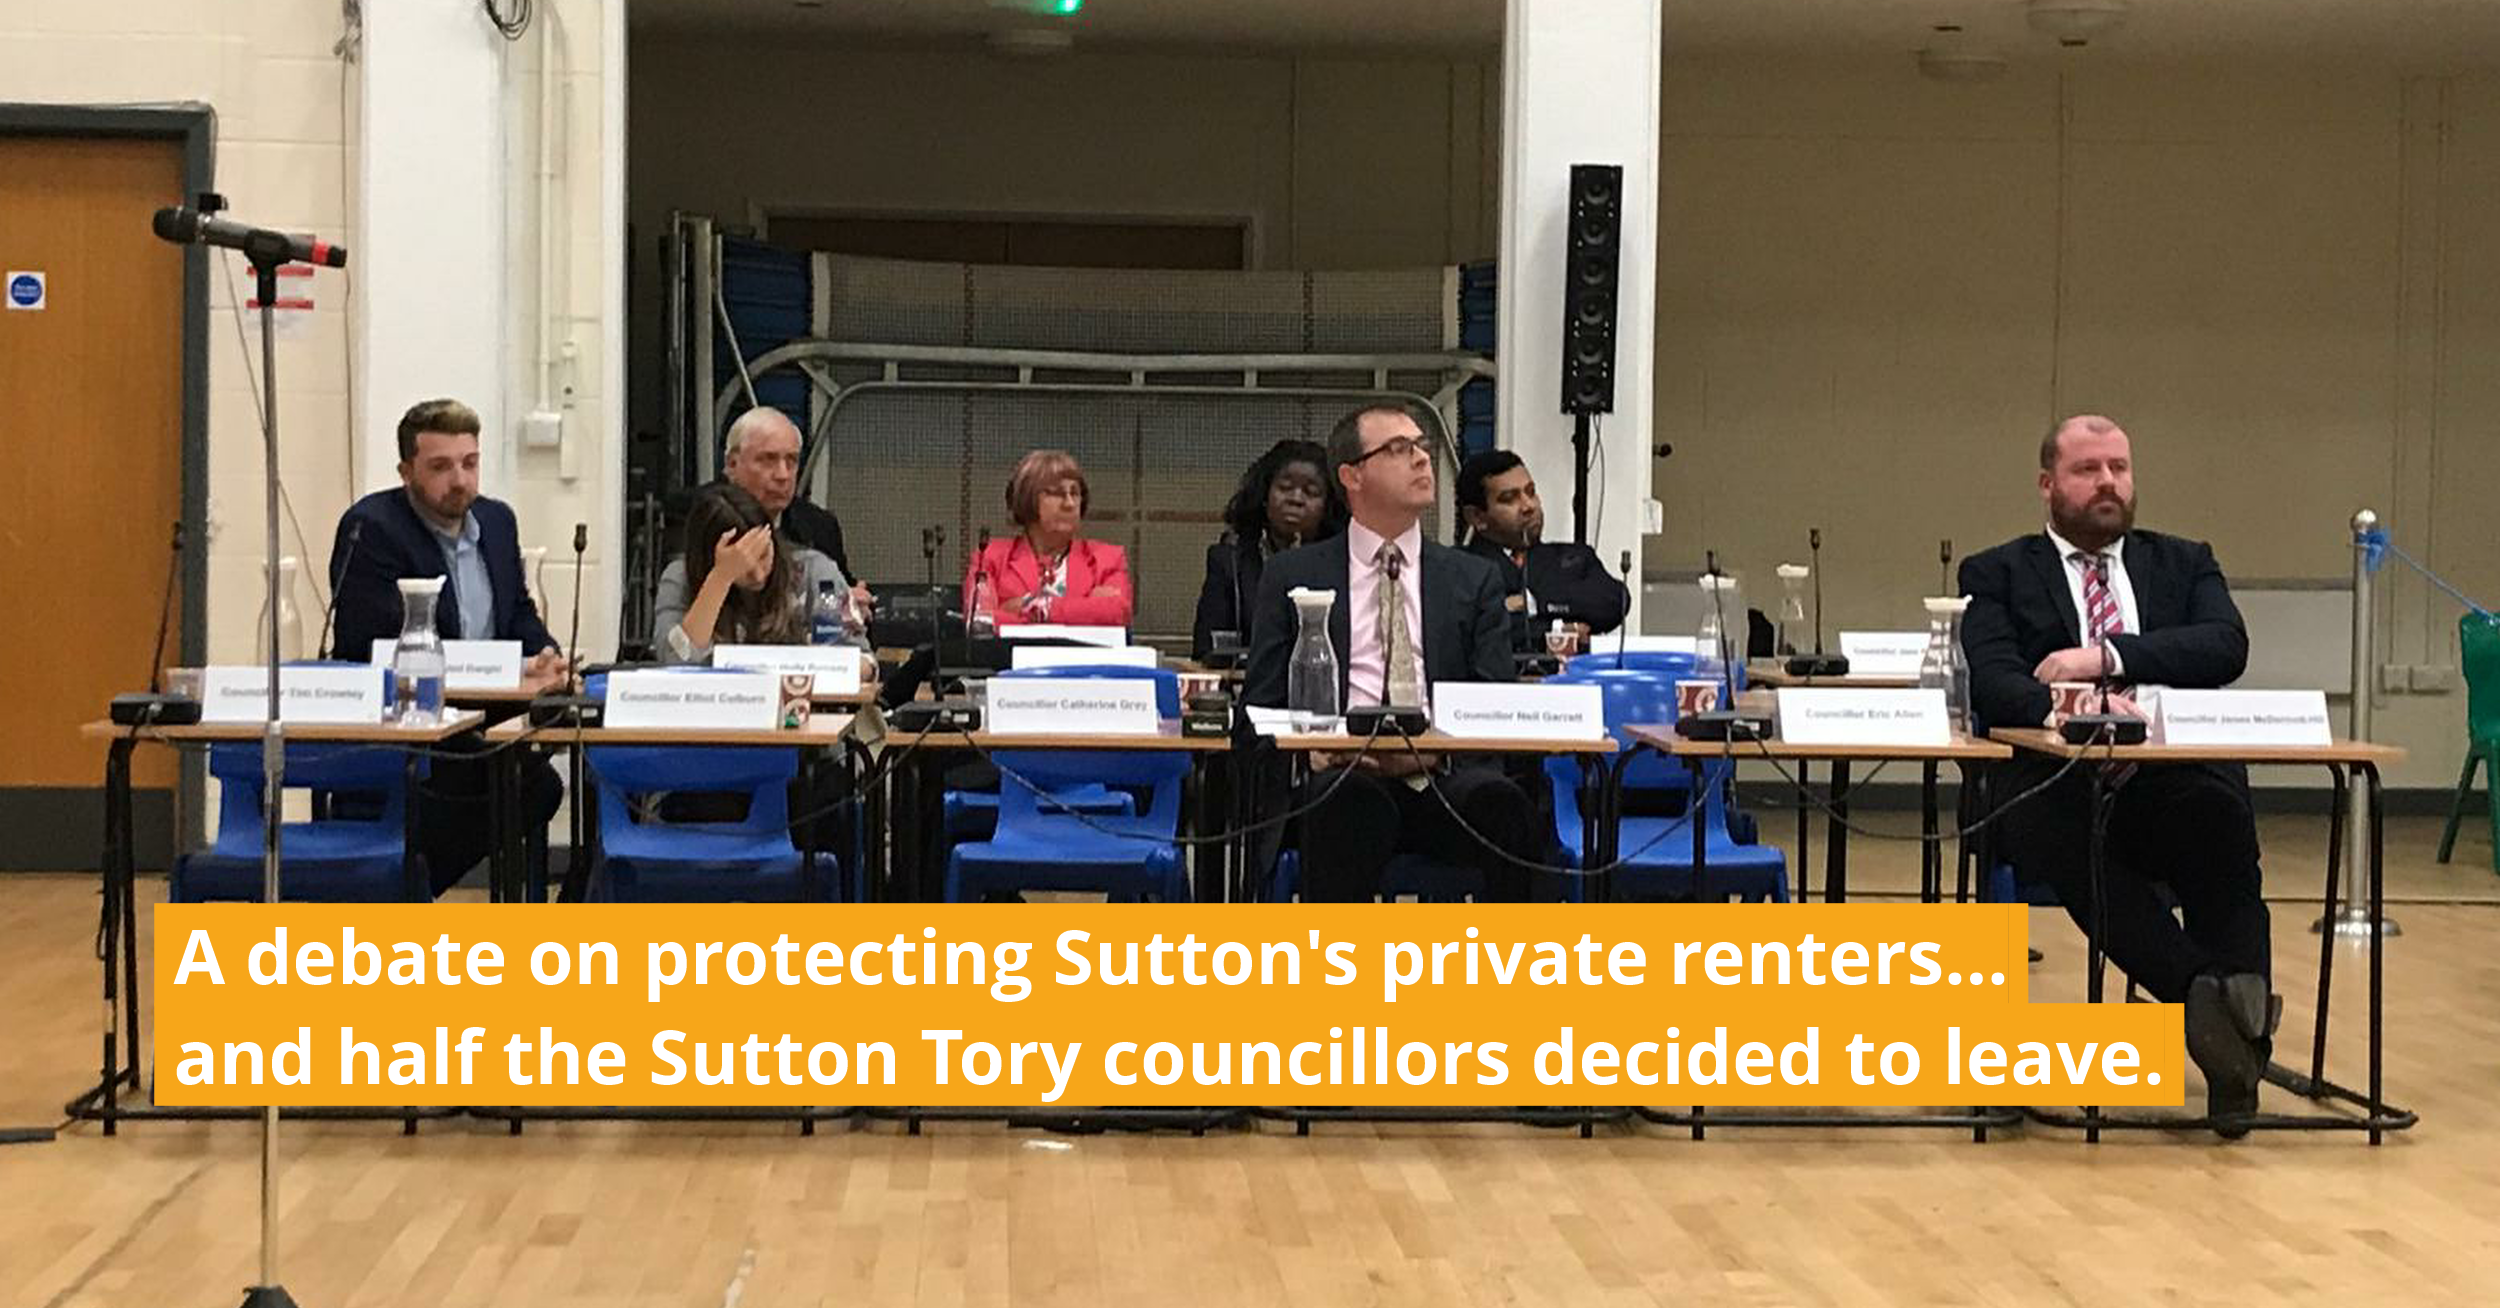 Sutton Tories refuse to back THEIR OWN ministers on better protection for private tenants